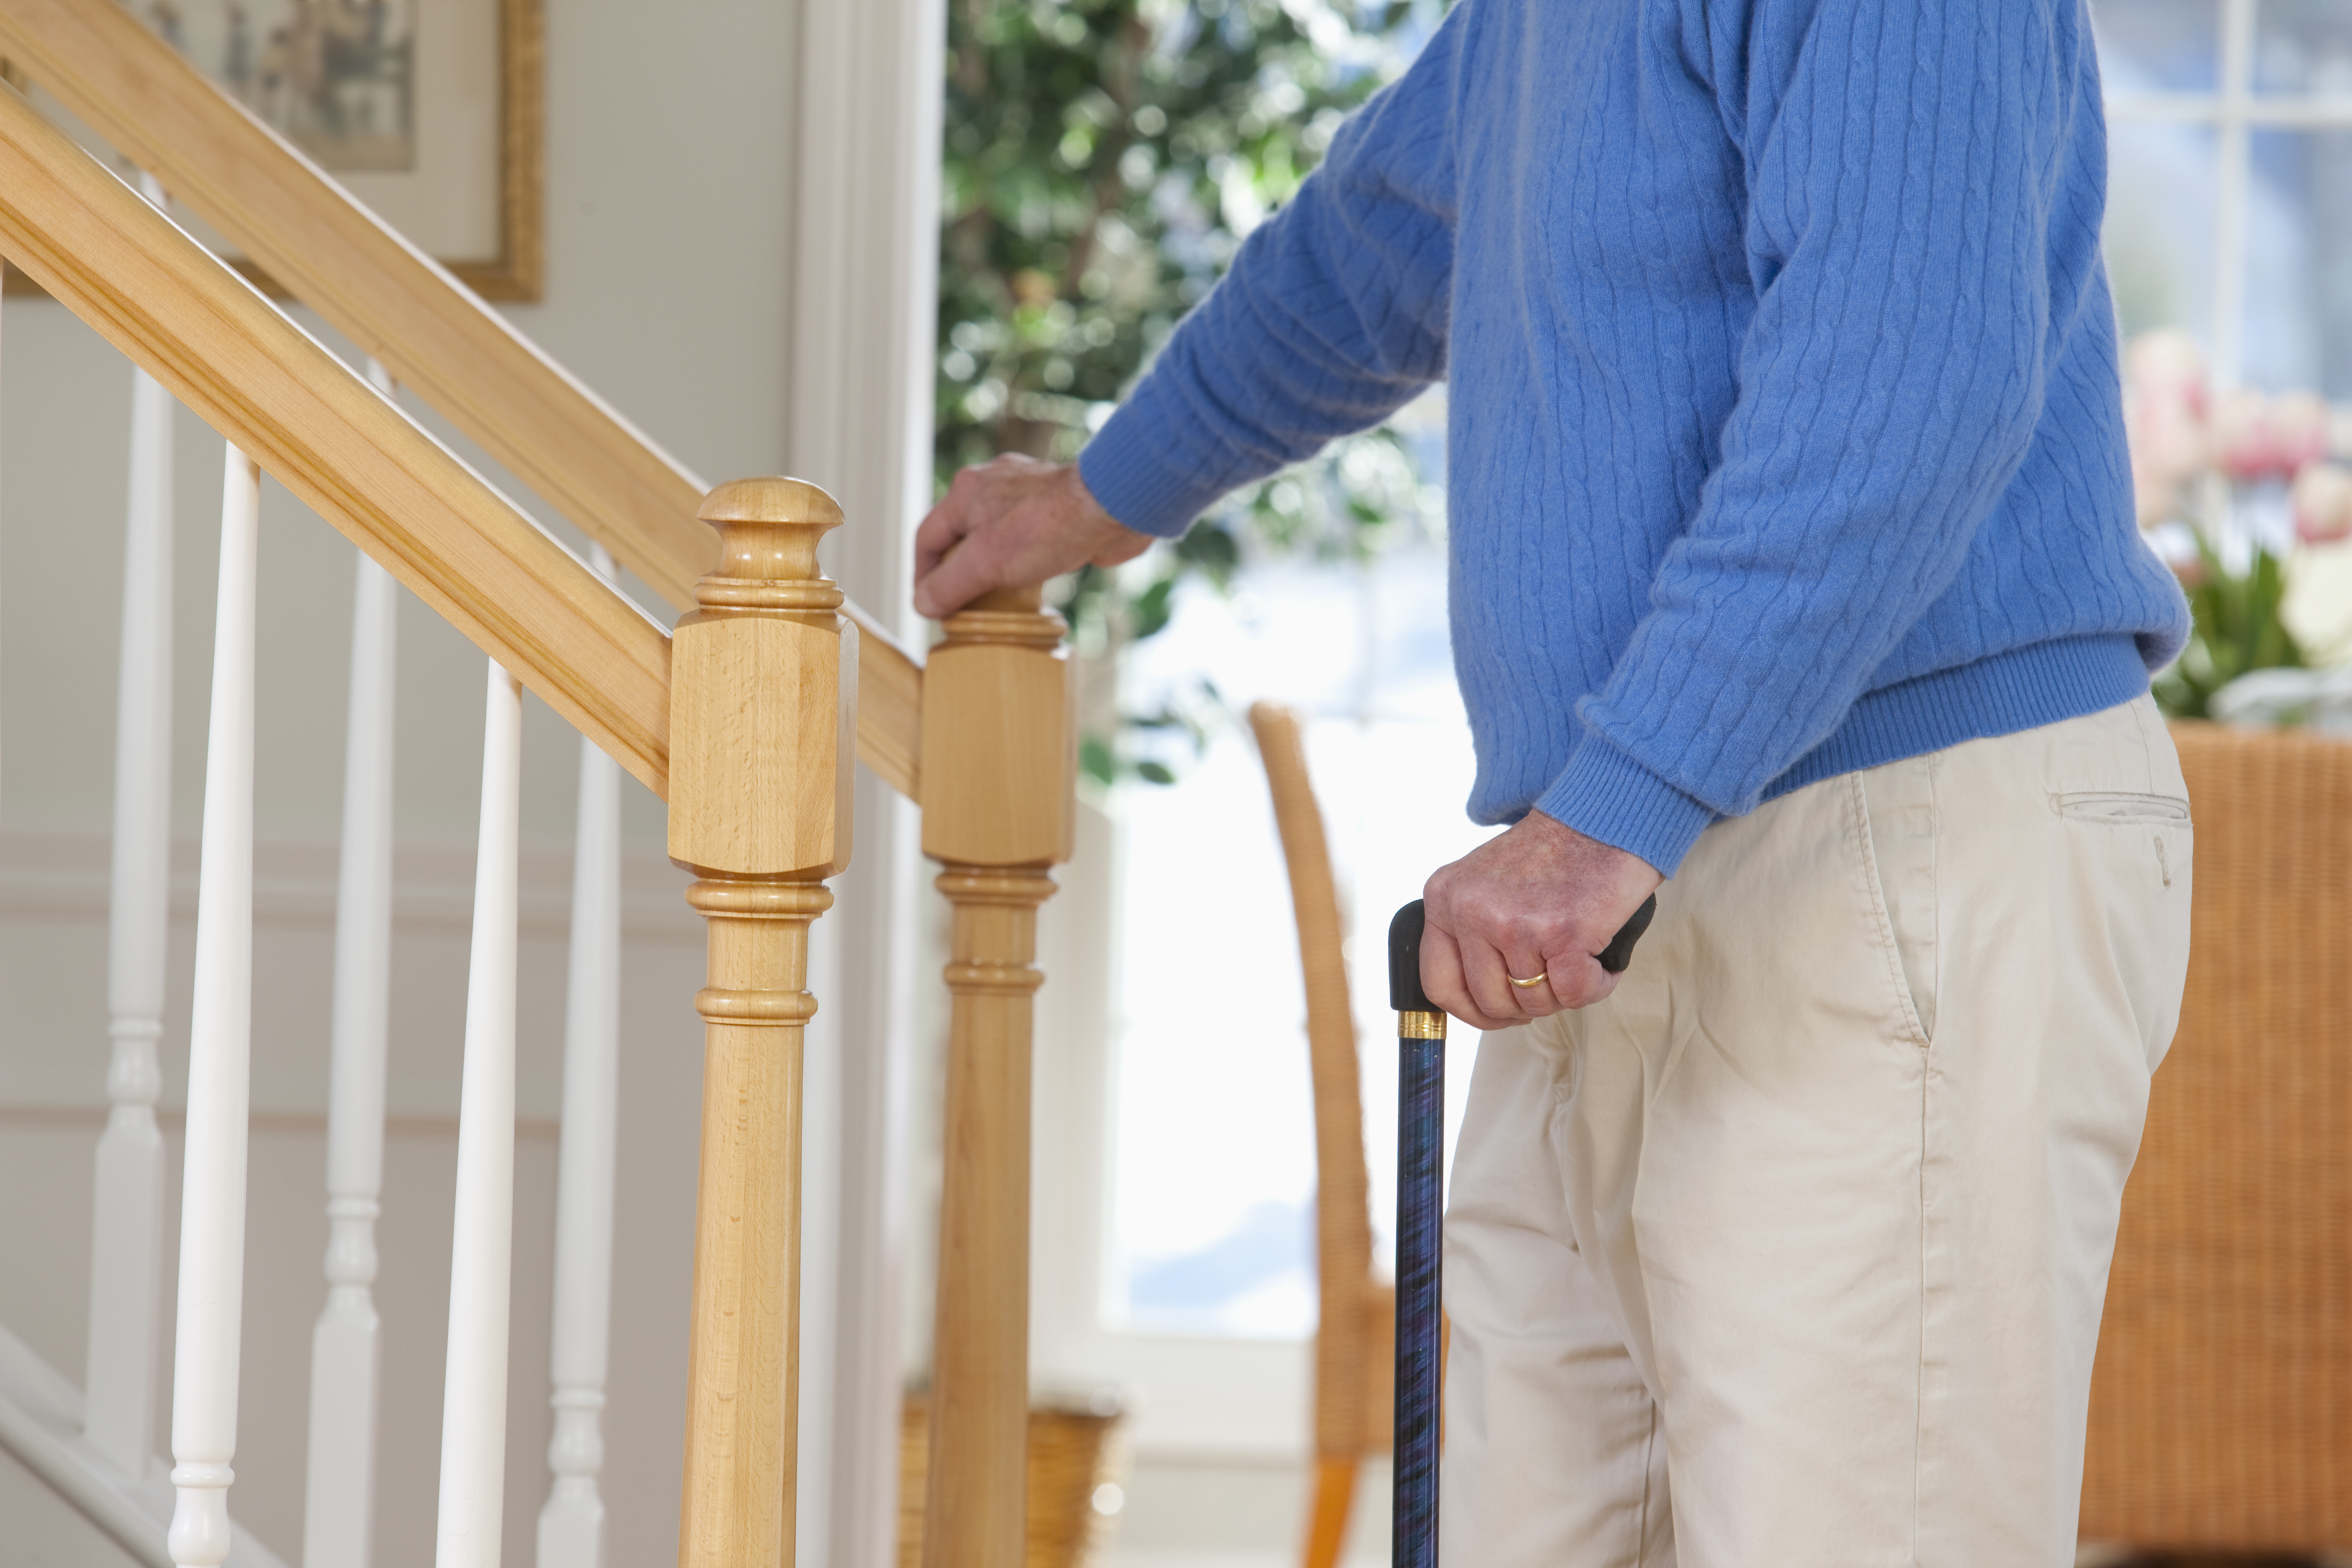 4 Tips for Preventing Falls in Your Home